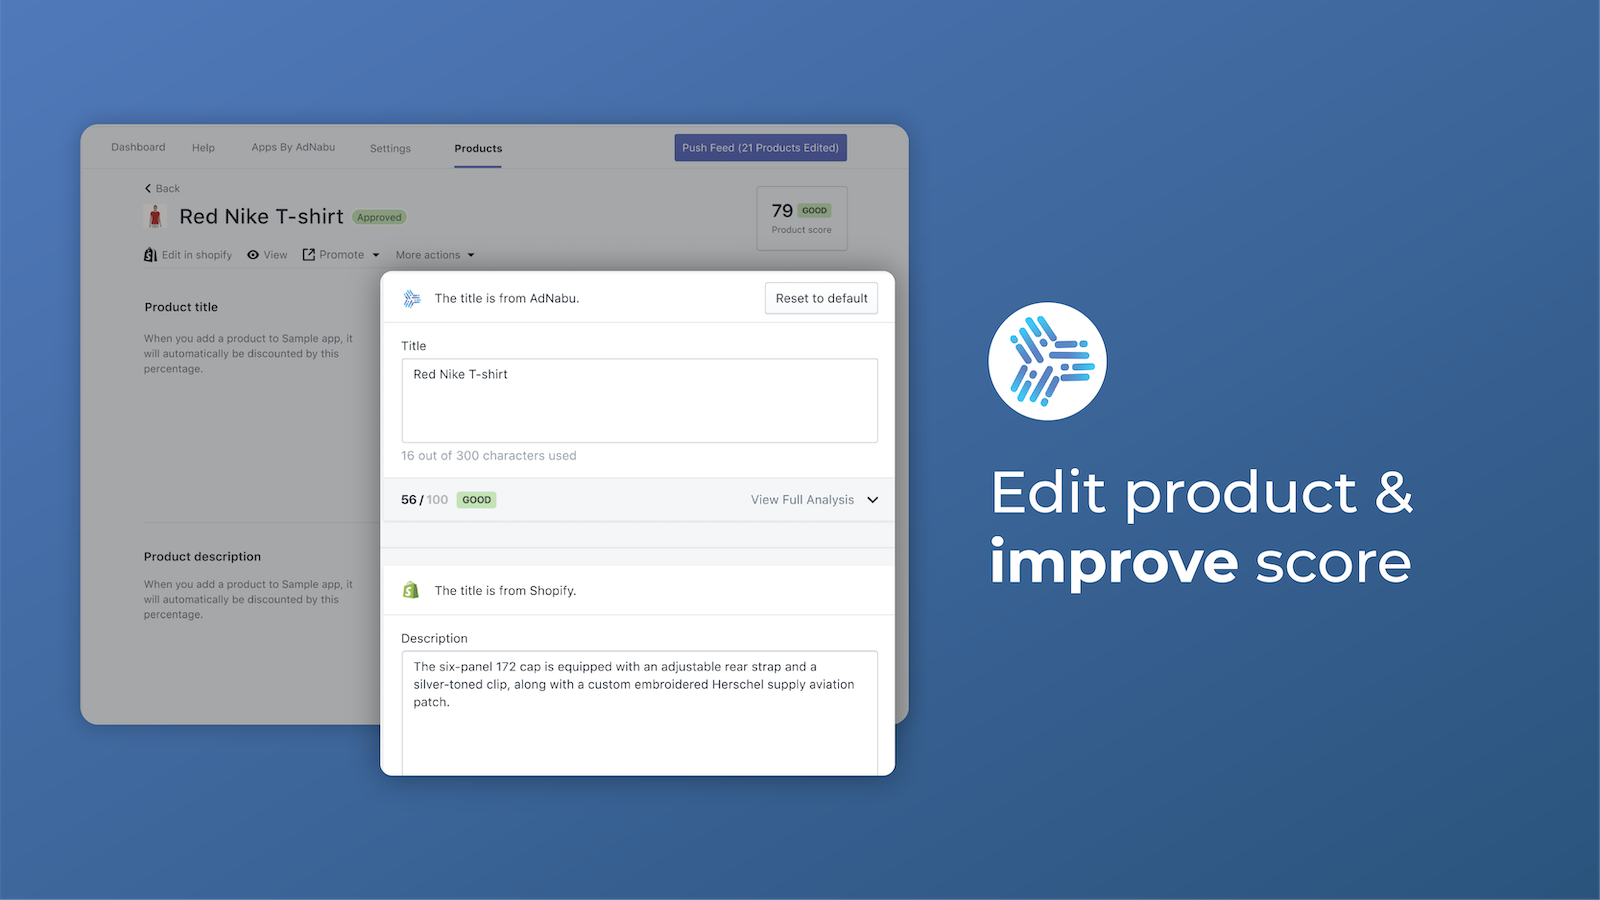 Edit Product & improve score